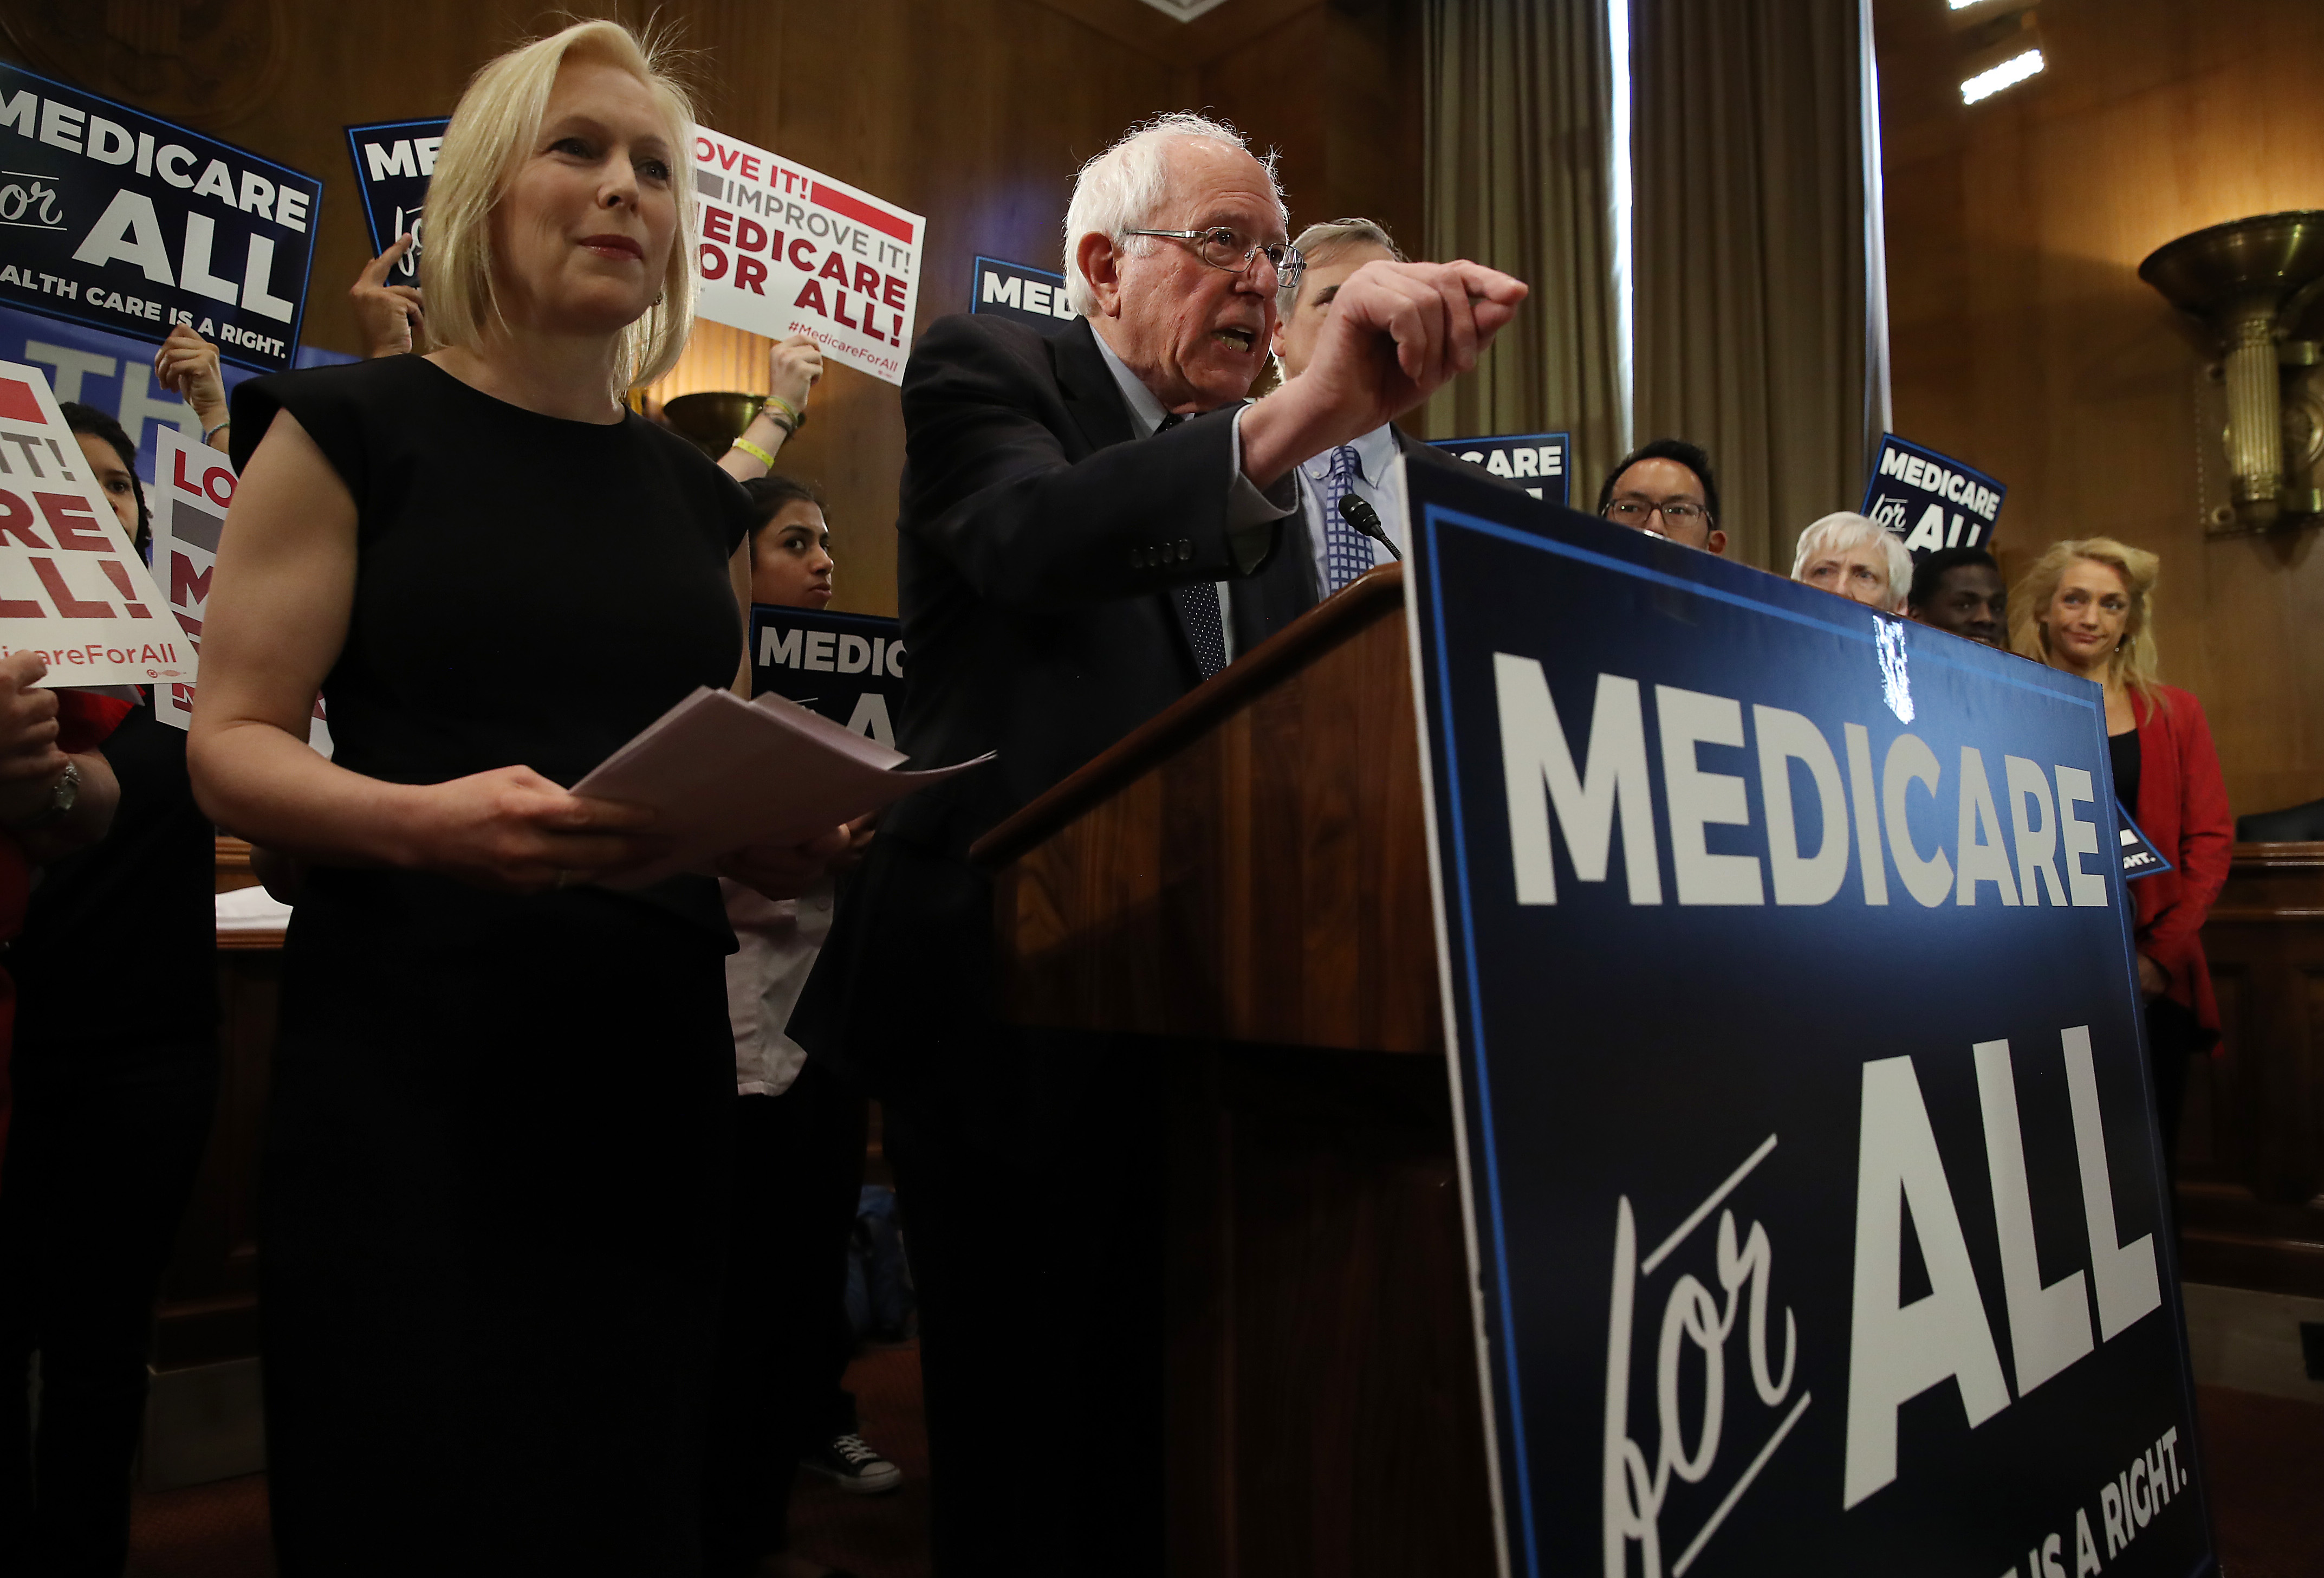 Sen. Kirsten Gillibrand (D-NY) stands next to Sen. Bernie Sanders (I-VT) while he speaks while introducing health care legislation during a news conference on Capitol Hill, on April 9, 2019. (Photo by Mark Wilson/Getty Images)